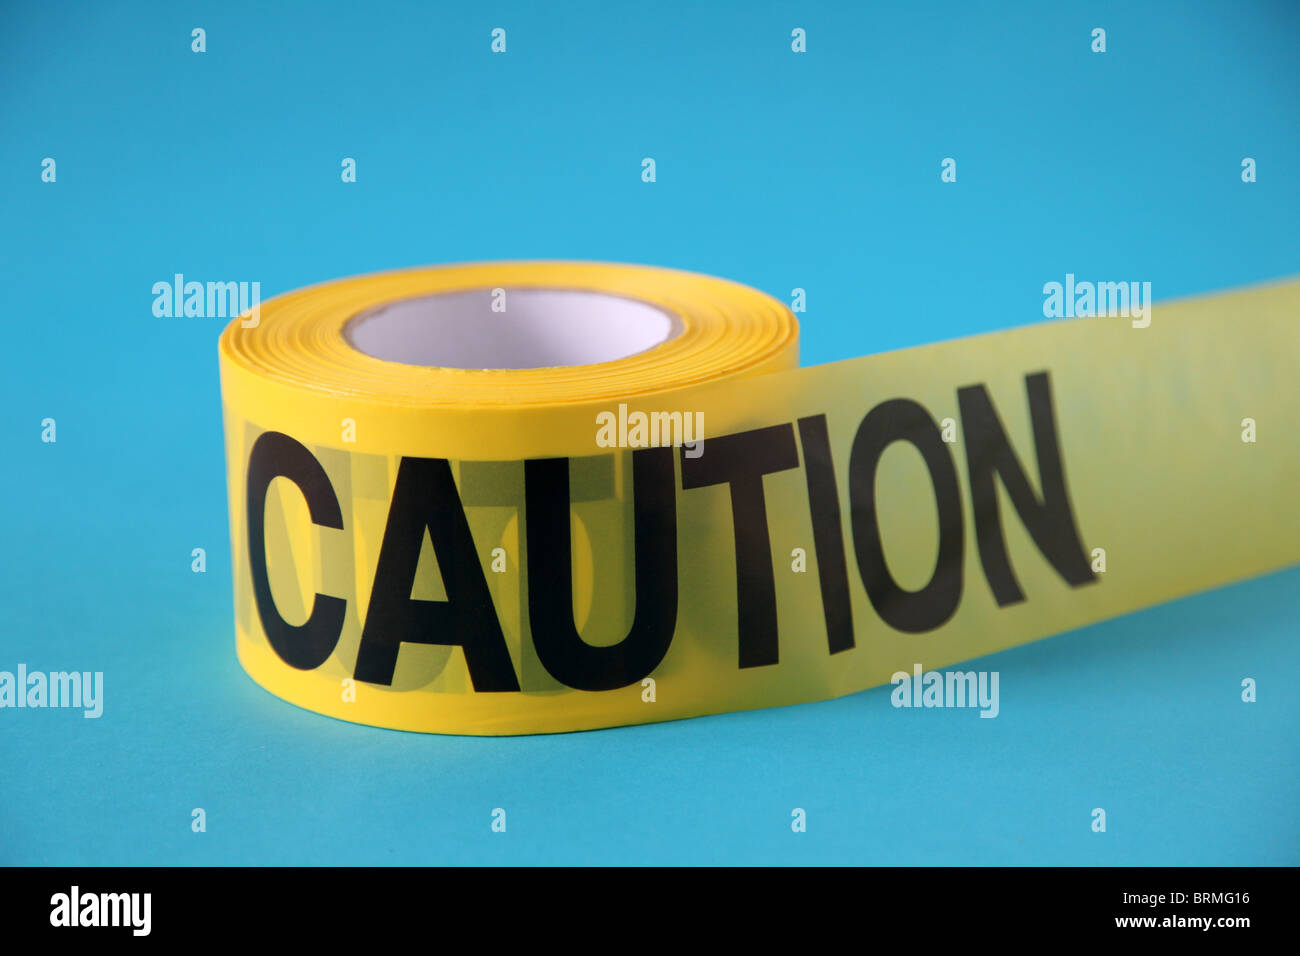 roll of CAUTION tape on blue surface - Stock Image